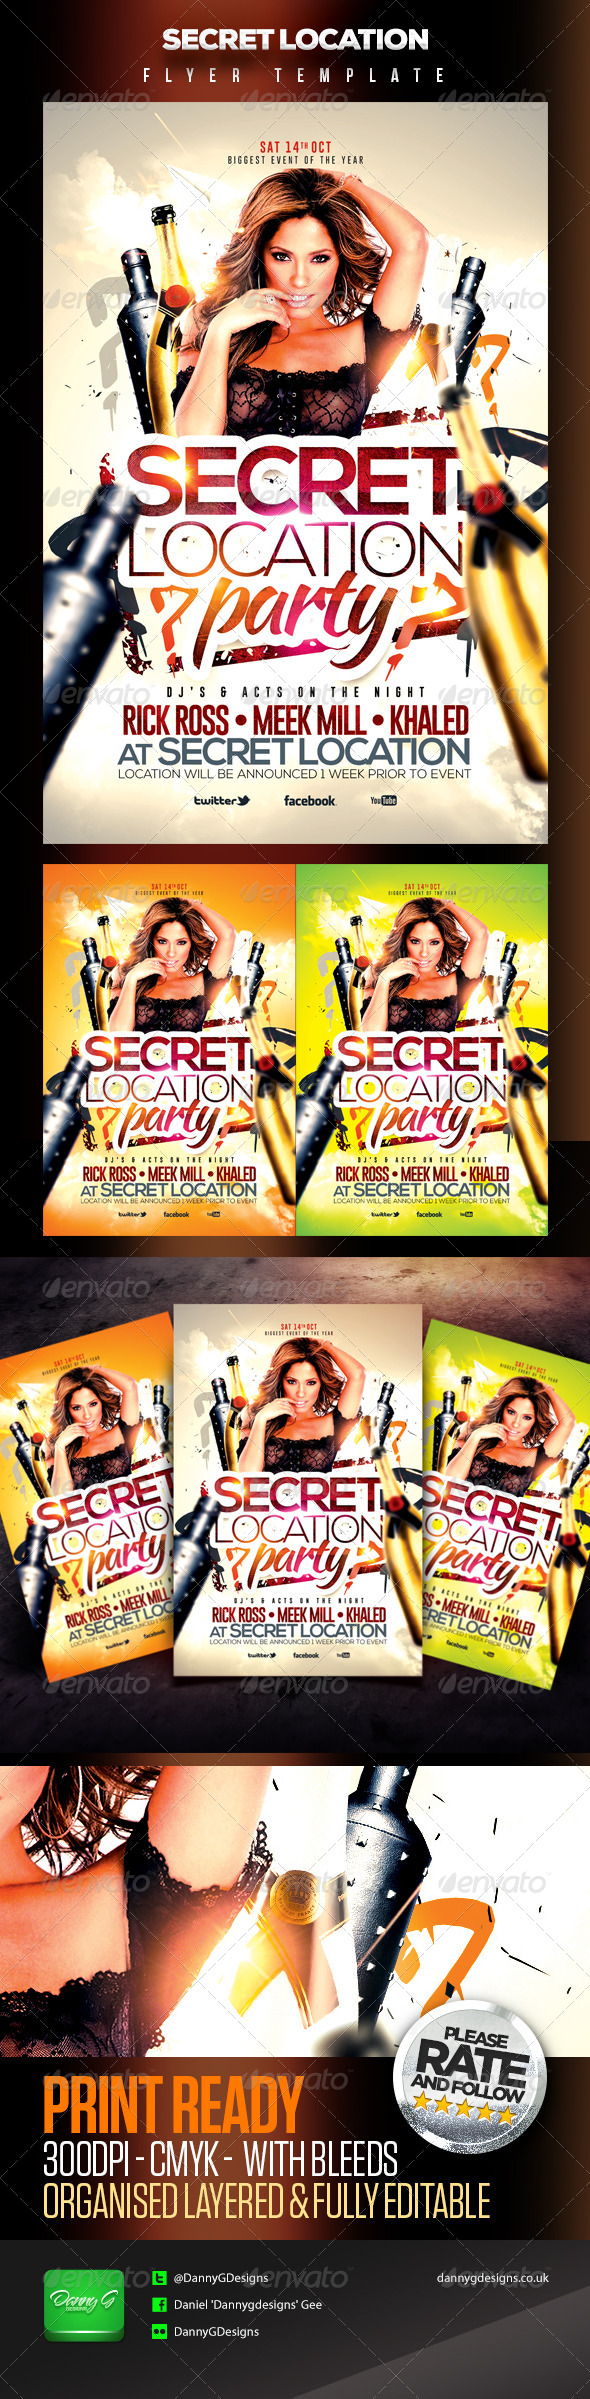 Secret Location Nightclub/Party Flyer Template - Clubs & Parties Events